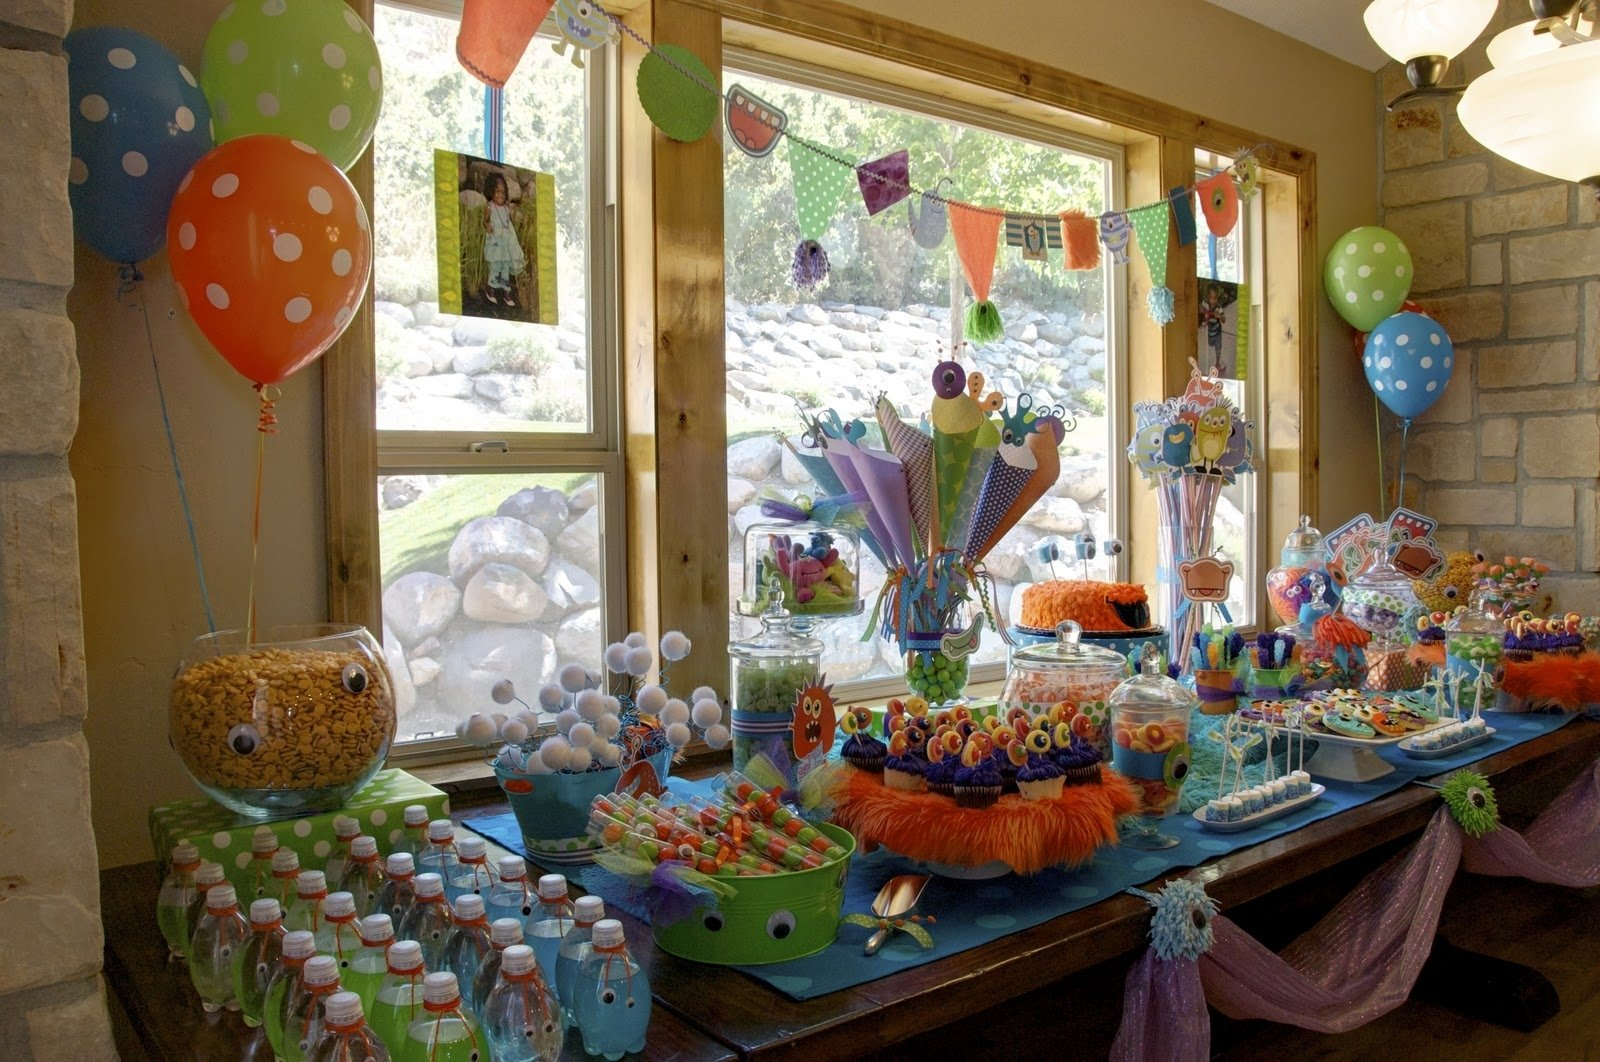 10 Stunning Birthday Ideas For 2 Year Old Boy my friends birthday is in the winter and she wanteaes cause shes 13